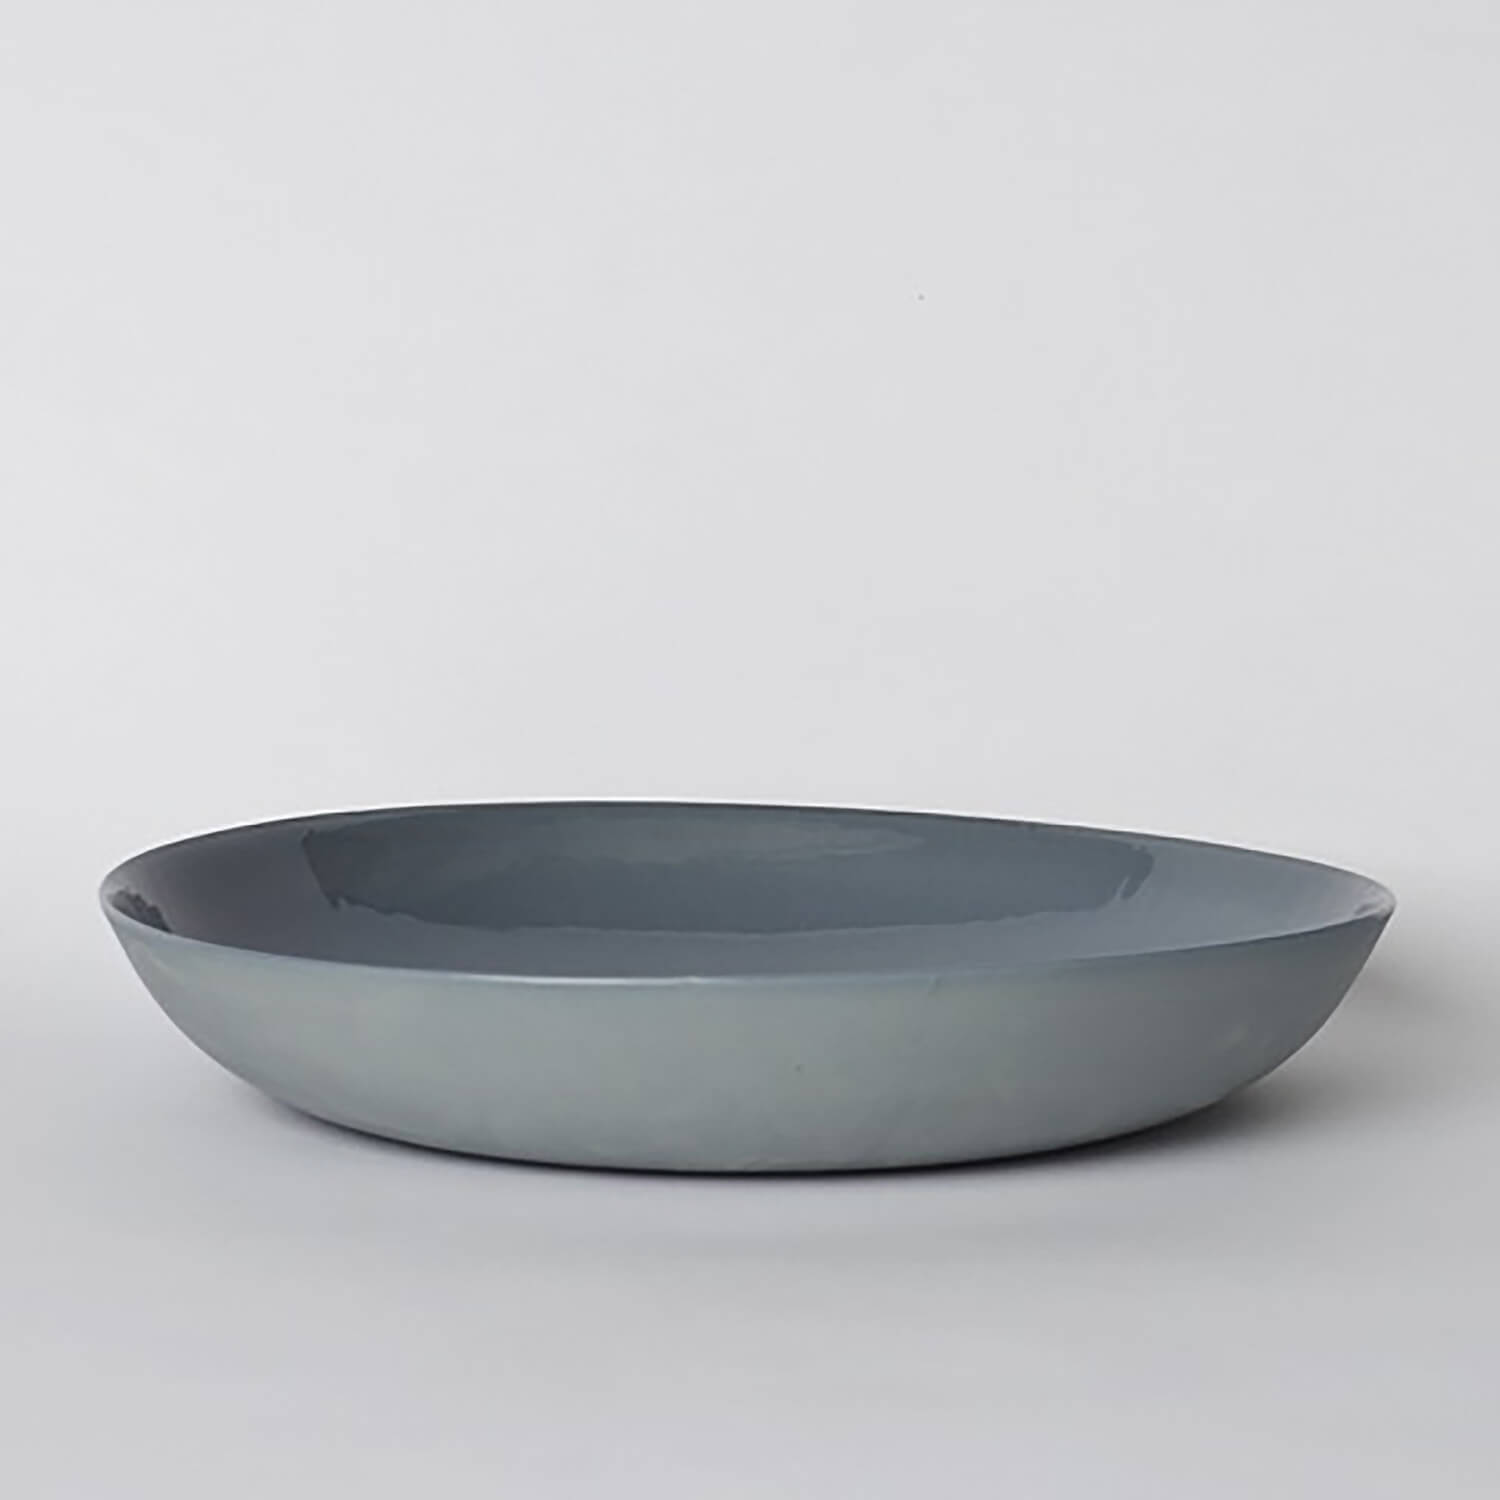 Pebble Bowl | The Host Gift Guide | Est Living